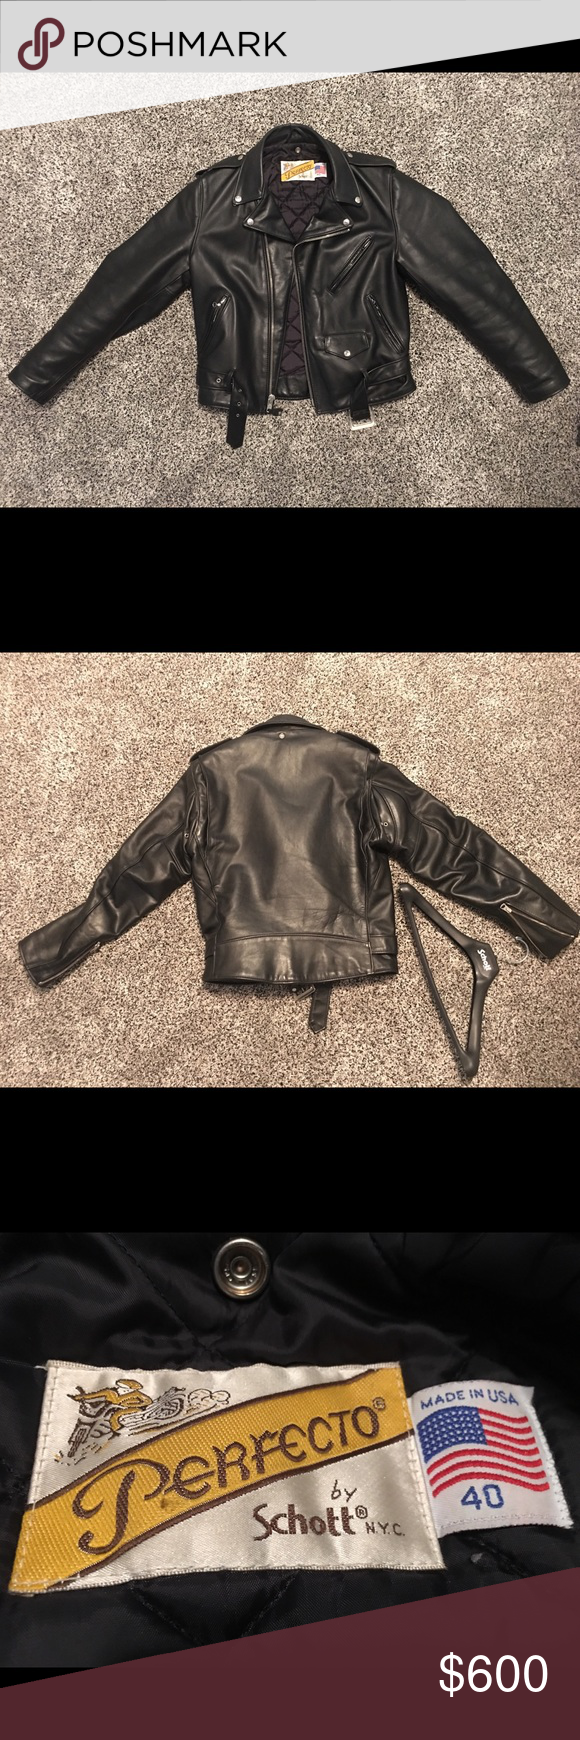 Schott Nyc 618 Steerhide Perfecto Leather Jacket Leather Jacket Jackets How To Wear [ 1740 x 580 Pixel ]